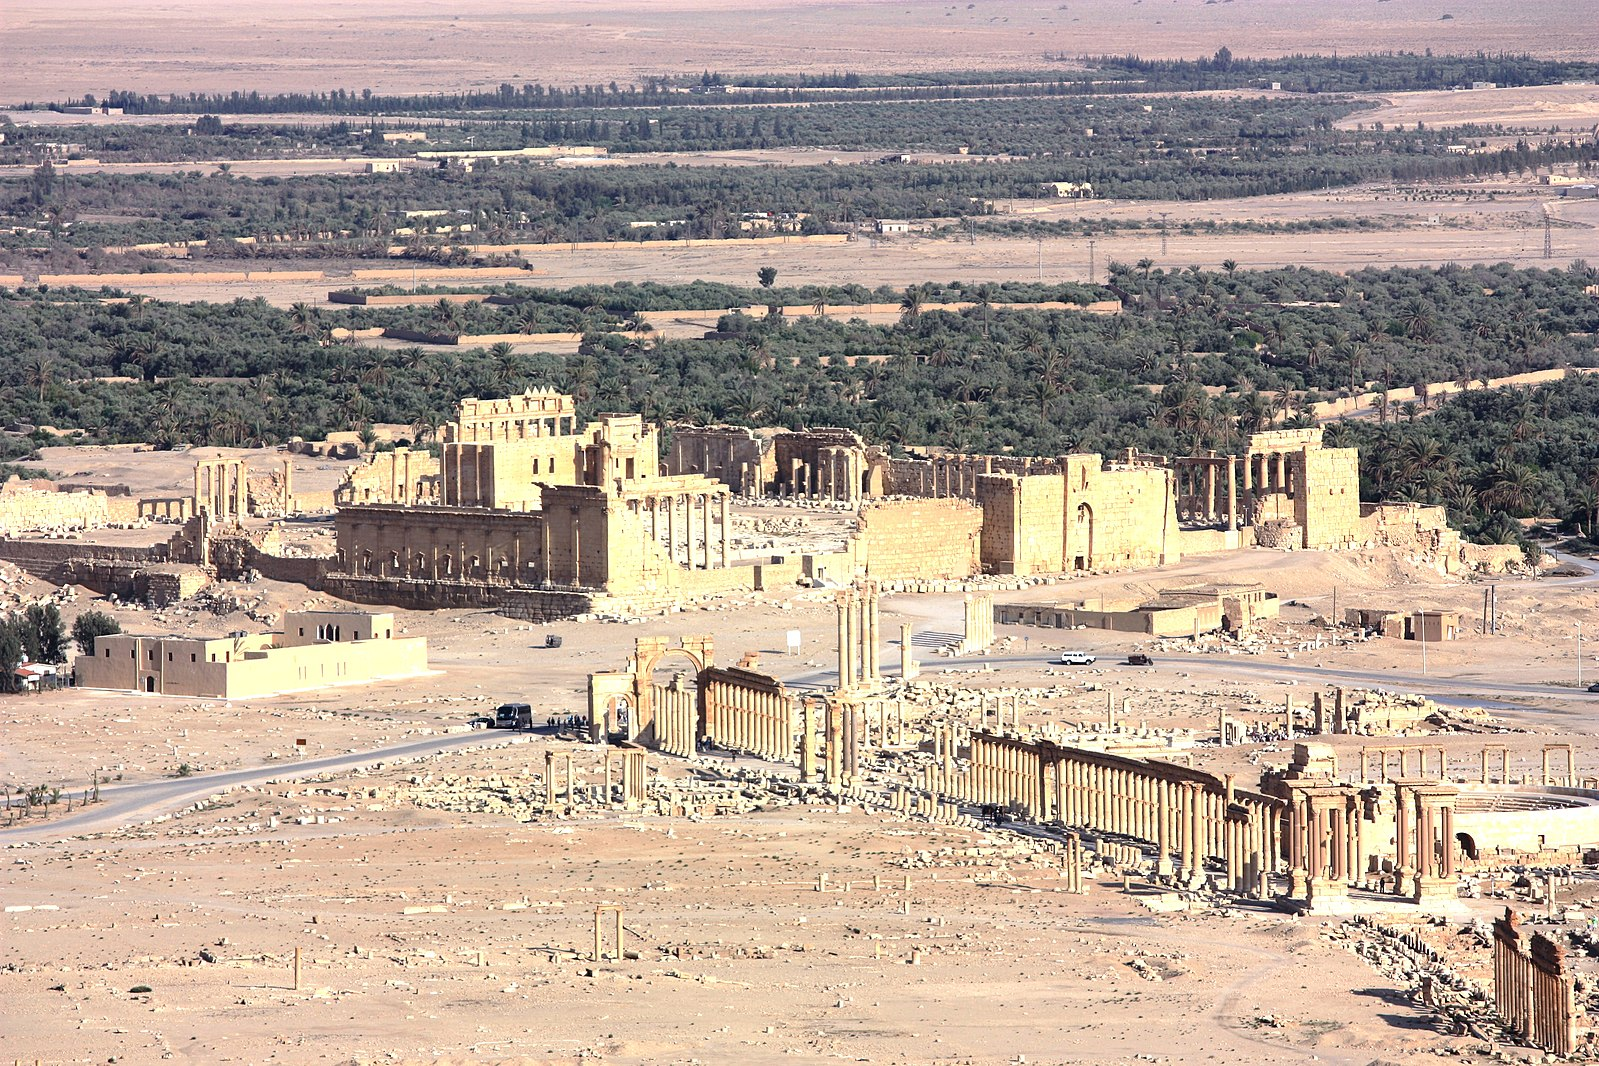 File:Palmyra, view from Qalaat Ibn Maan, Temple of Bel and colonnaded axis.jpg